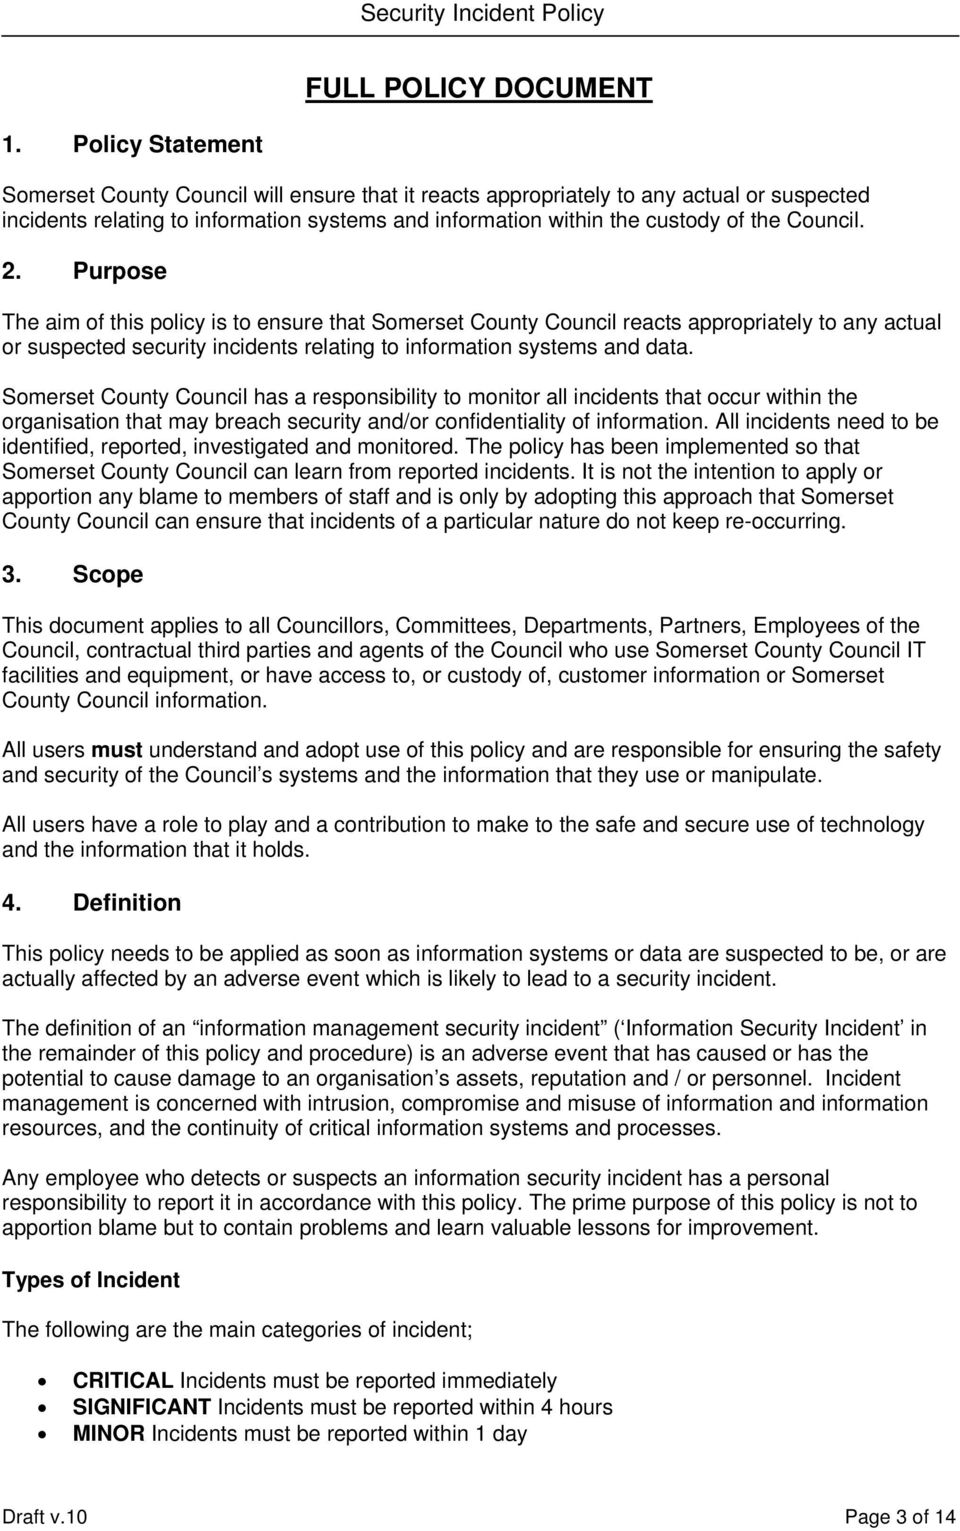 Council. 2. Purpose The aim of this policy is to ensure that Somerset County Council reacts appropriately to any actual or suspected security incidents relating to information systems and data.